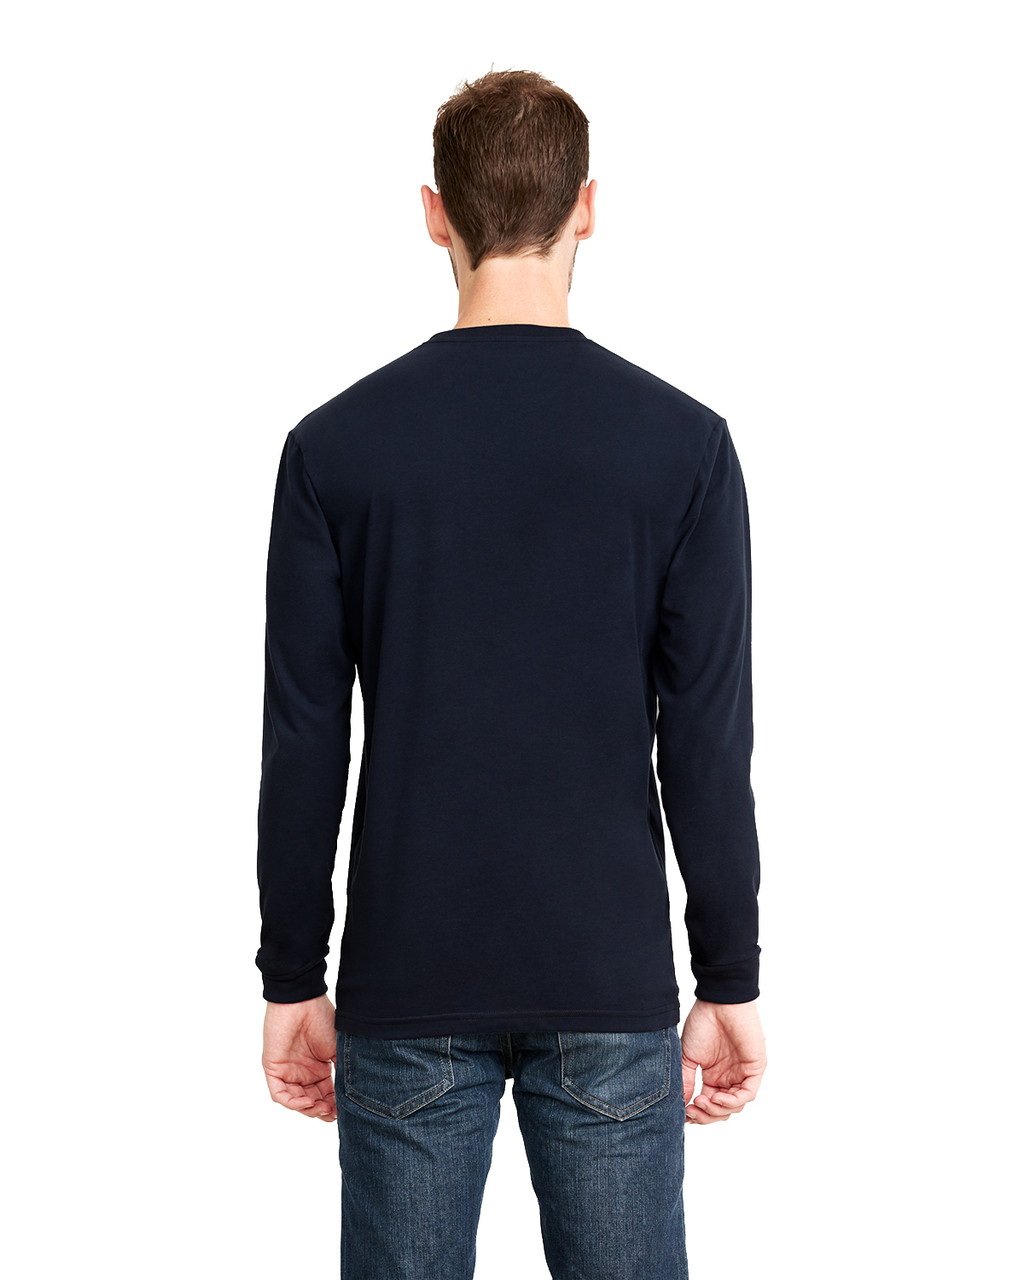 Midnight Navy, Back - 6411 Next Level Unisex Sueded Long-Sleeve Crew Shirt | Blankclothing.ca